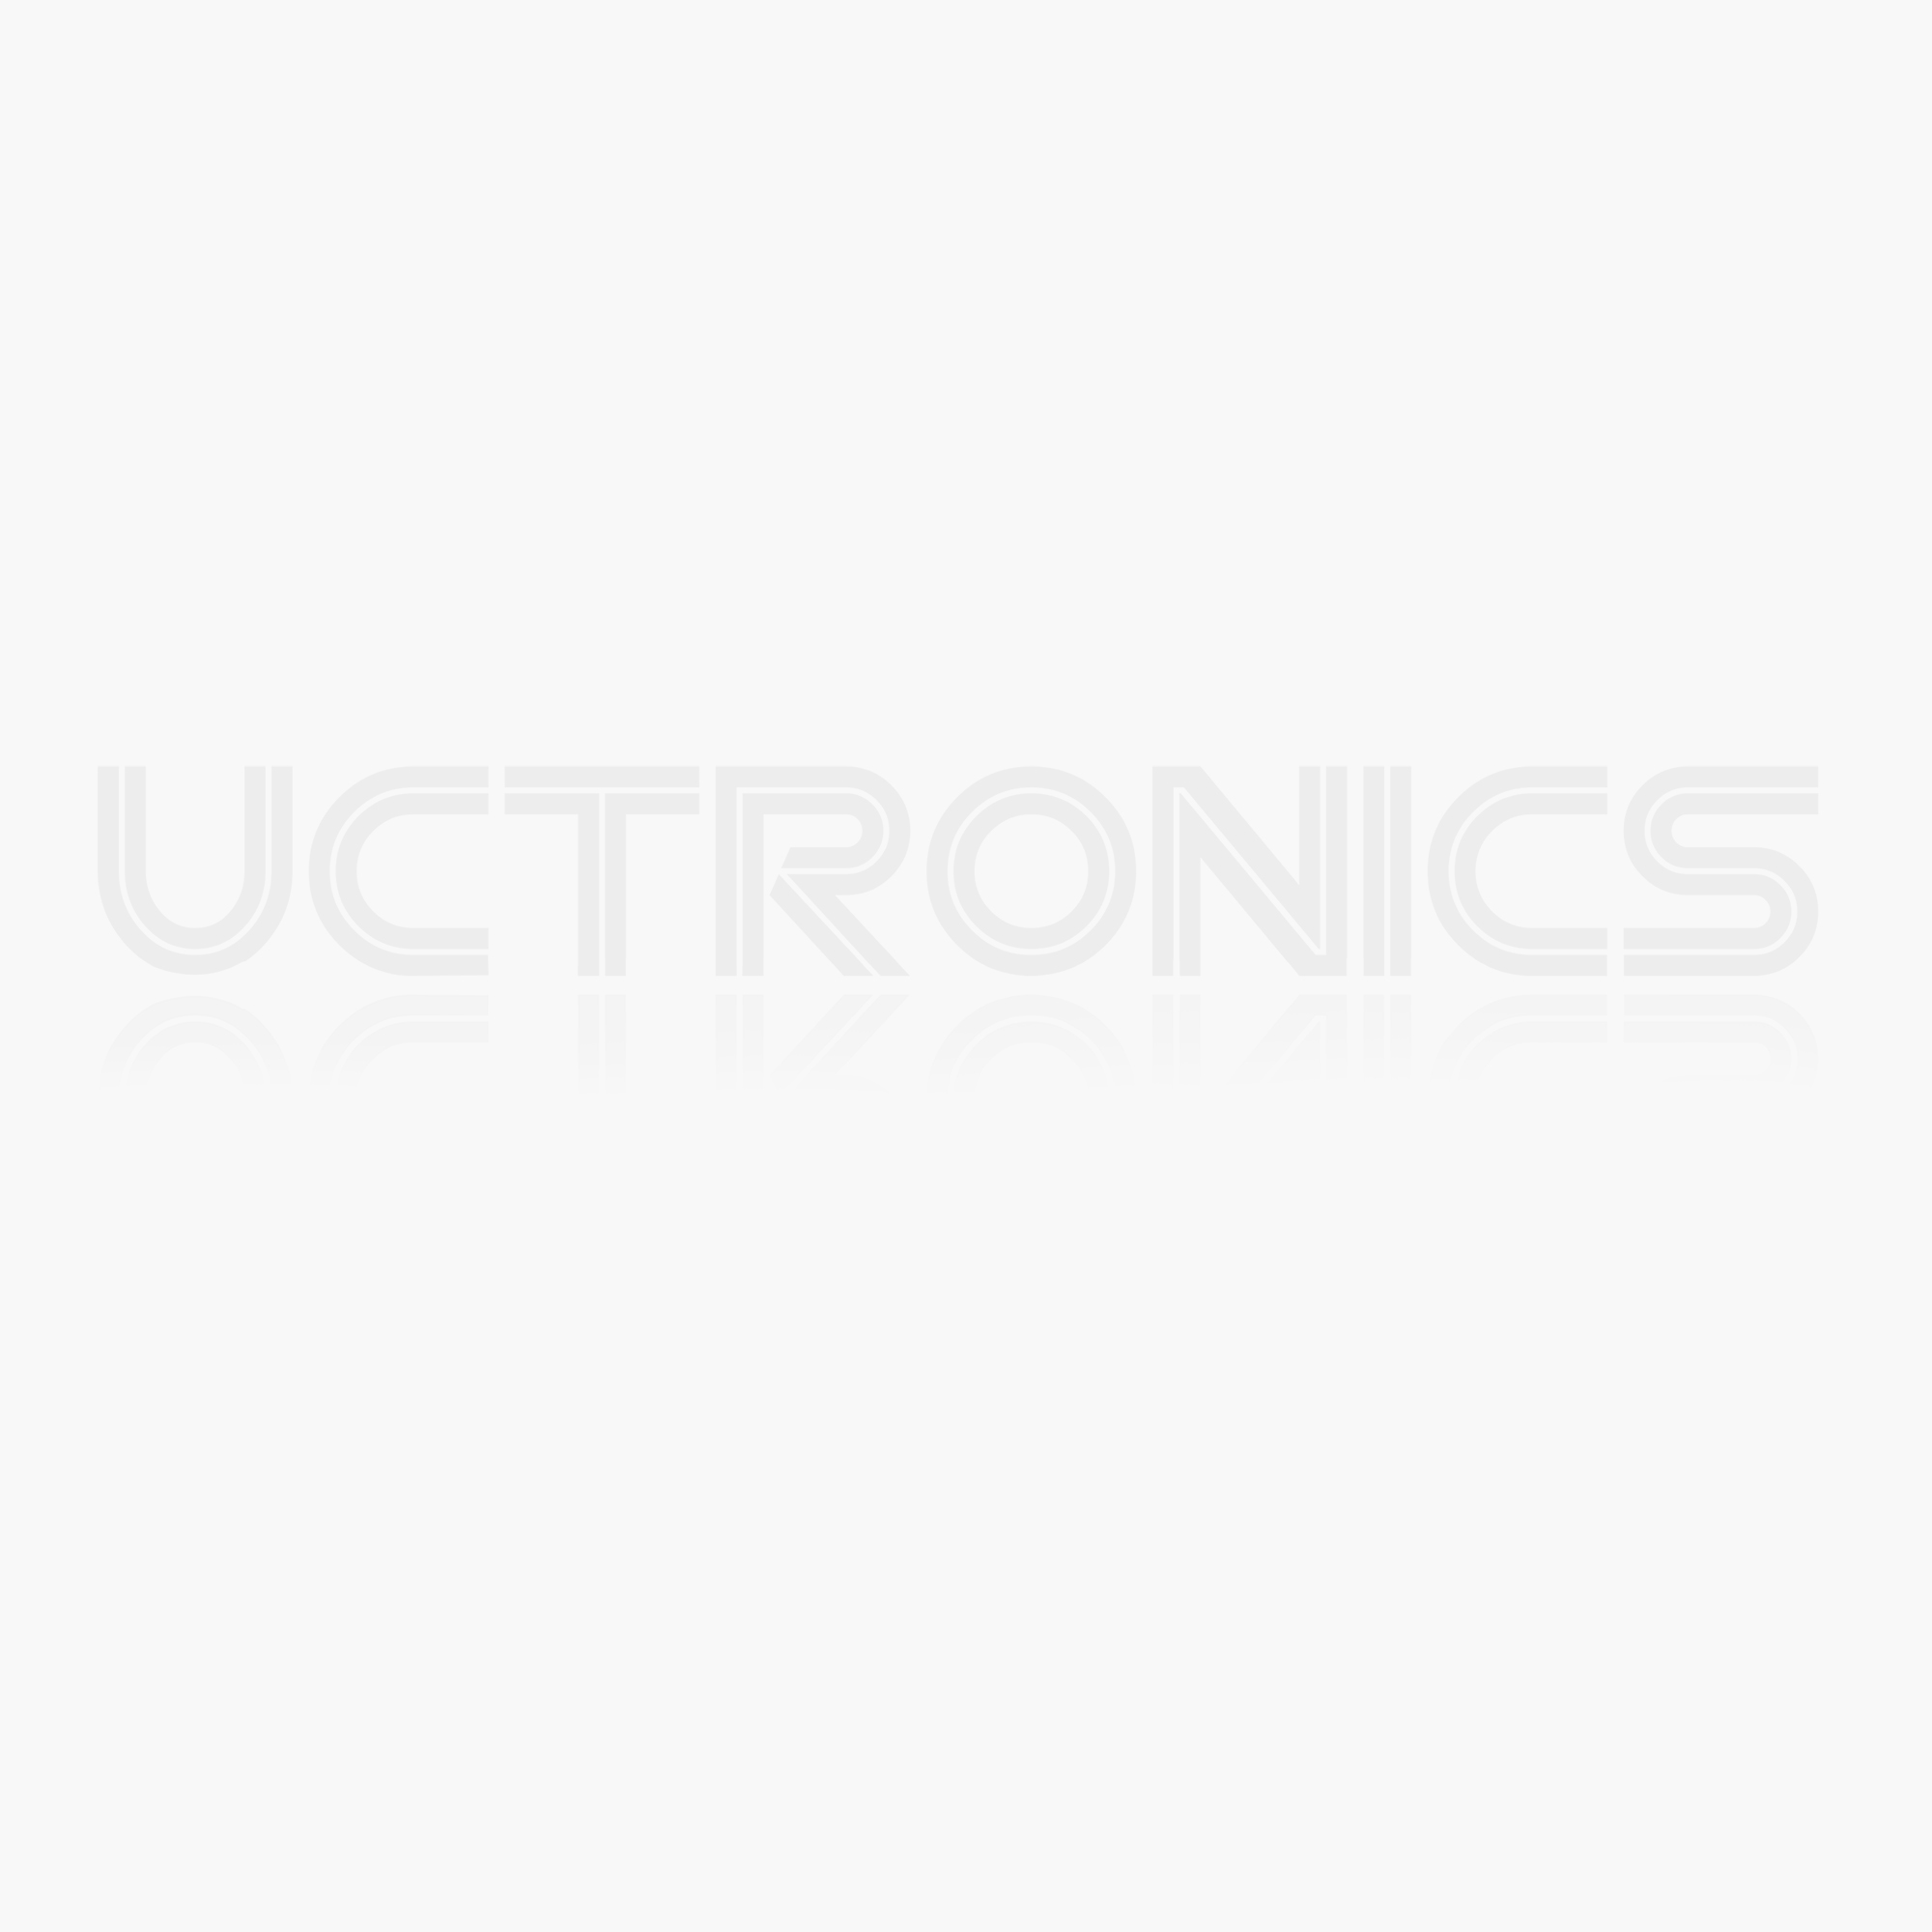 hight resolution of uctronics wholesale for electronics arduino and raspberry pi modules robot parts and iot uctronics dc motor control dc 6 60v 30a stepless motor